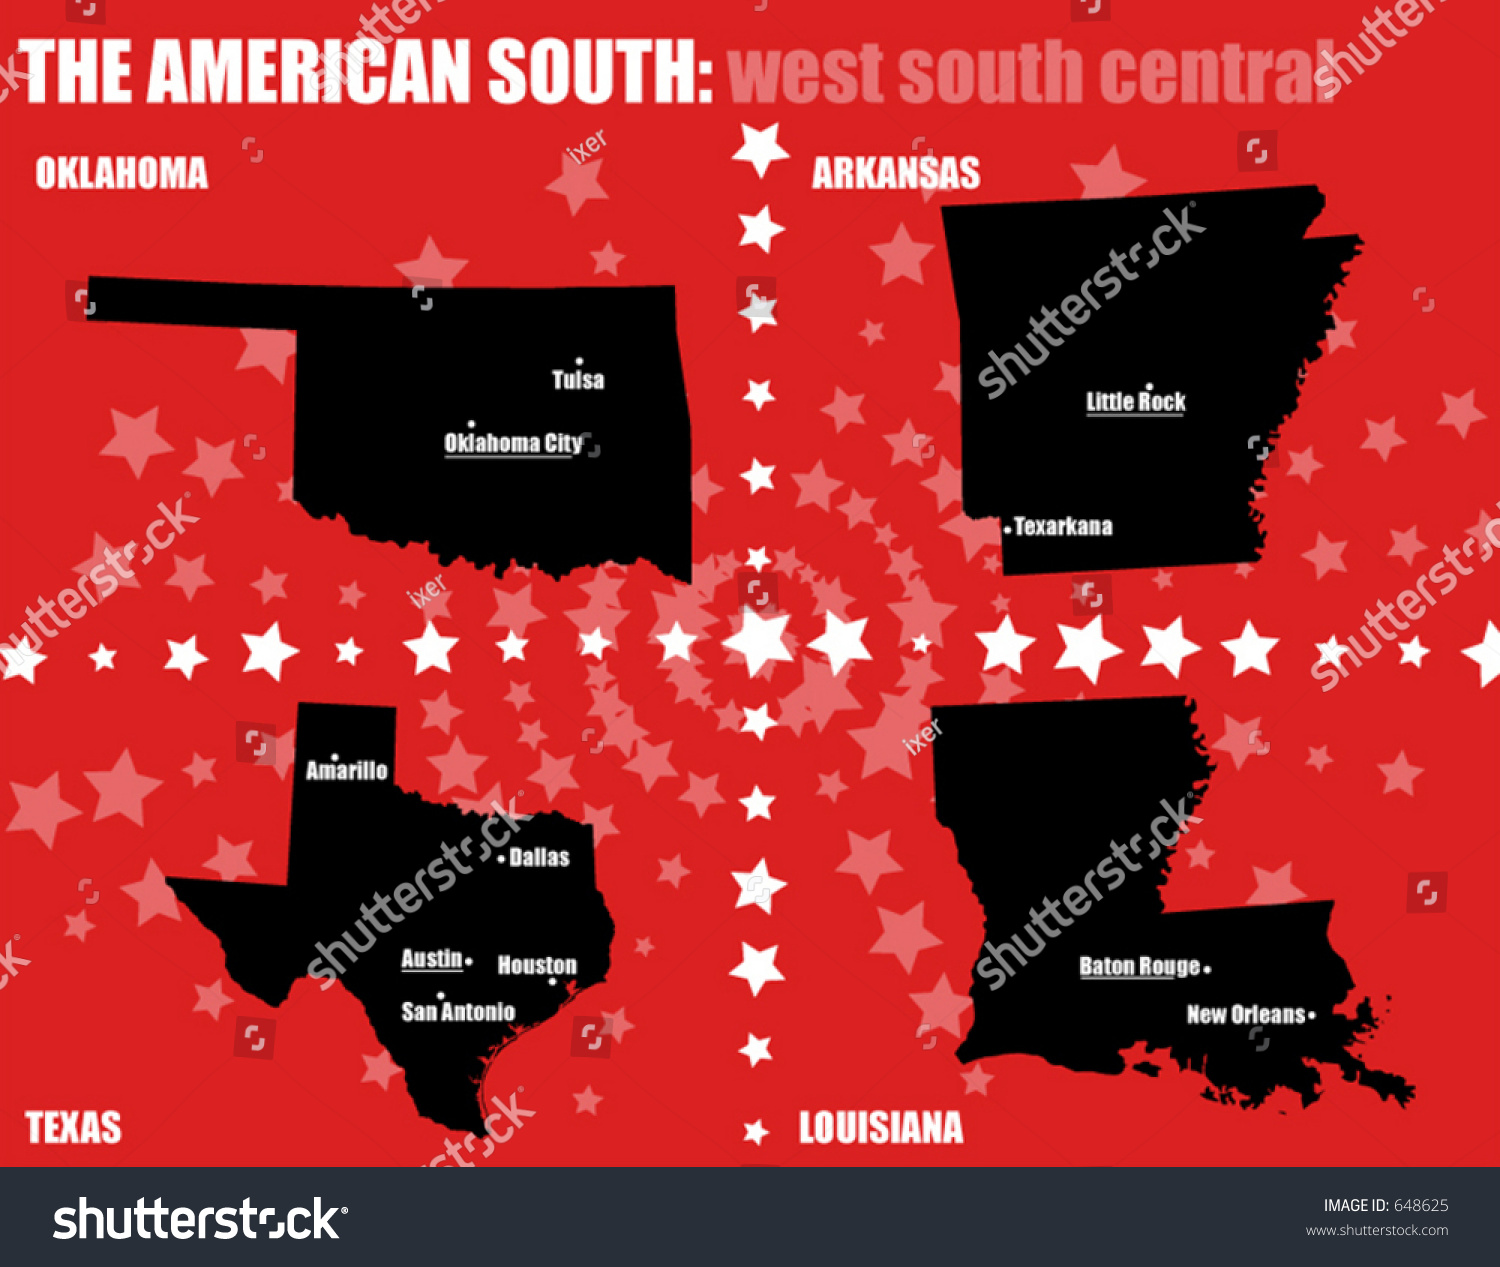 Usa Maps American South West South Stock Vector  Shutterstock - Usa map states and caps